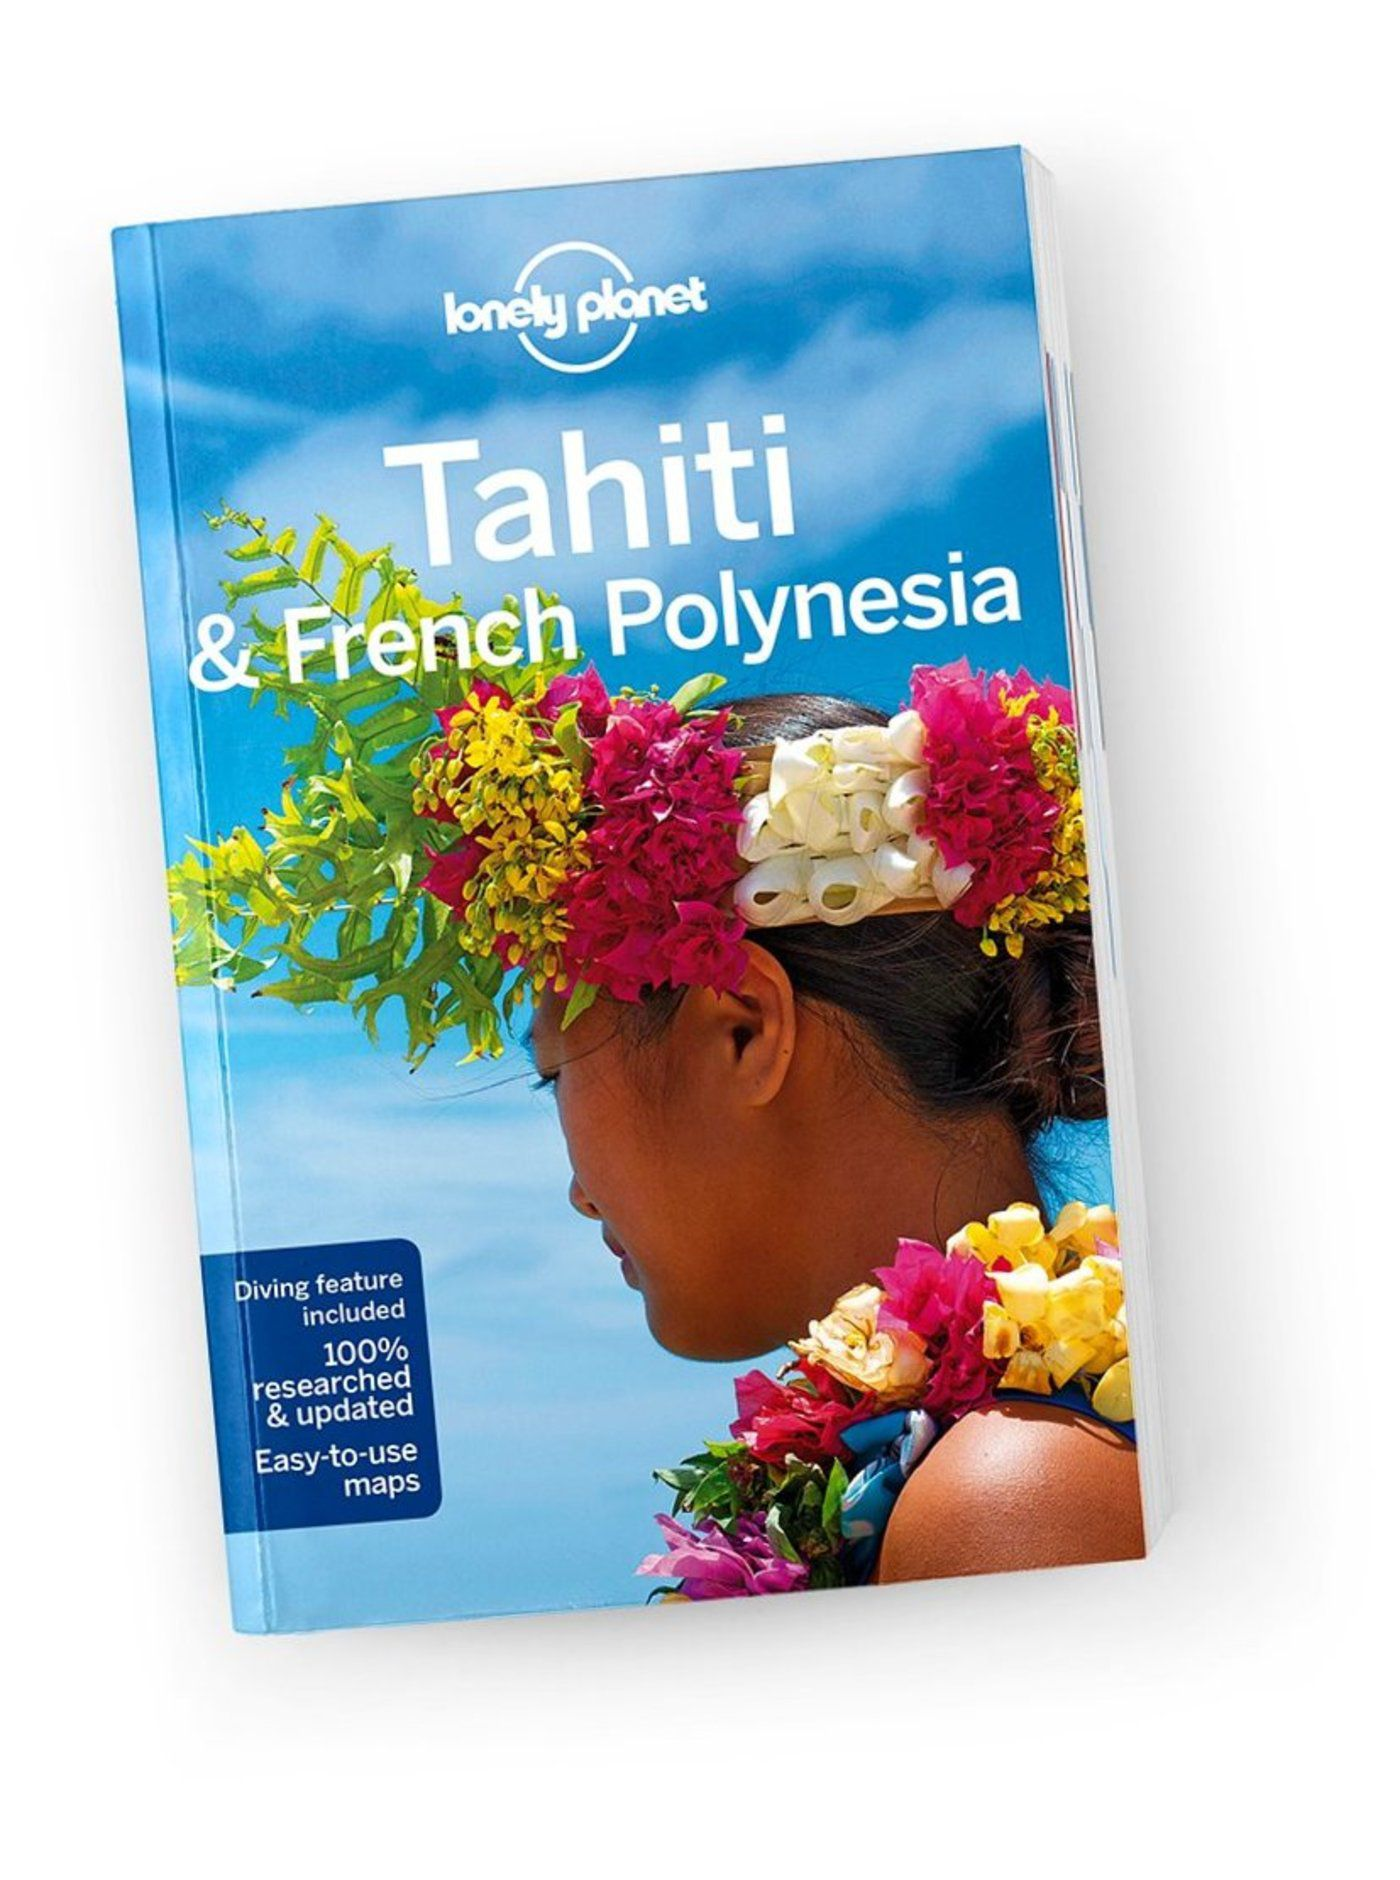 Tahiti & French Polynesia - Bora Bora (PDF Chapter), 10th Edition Dec 2016 by Lonely Planet 9781786572196006